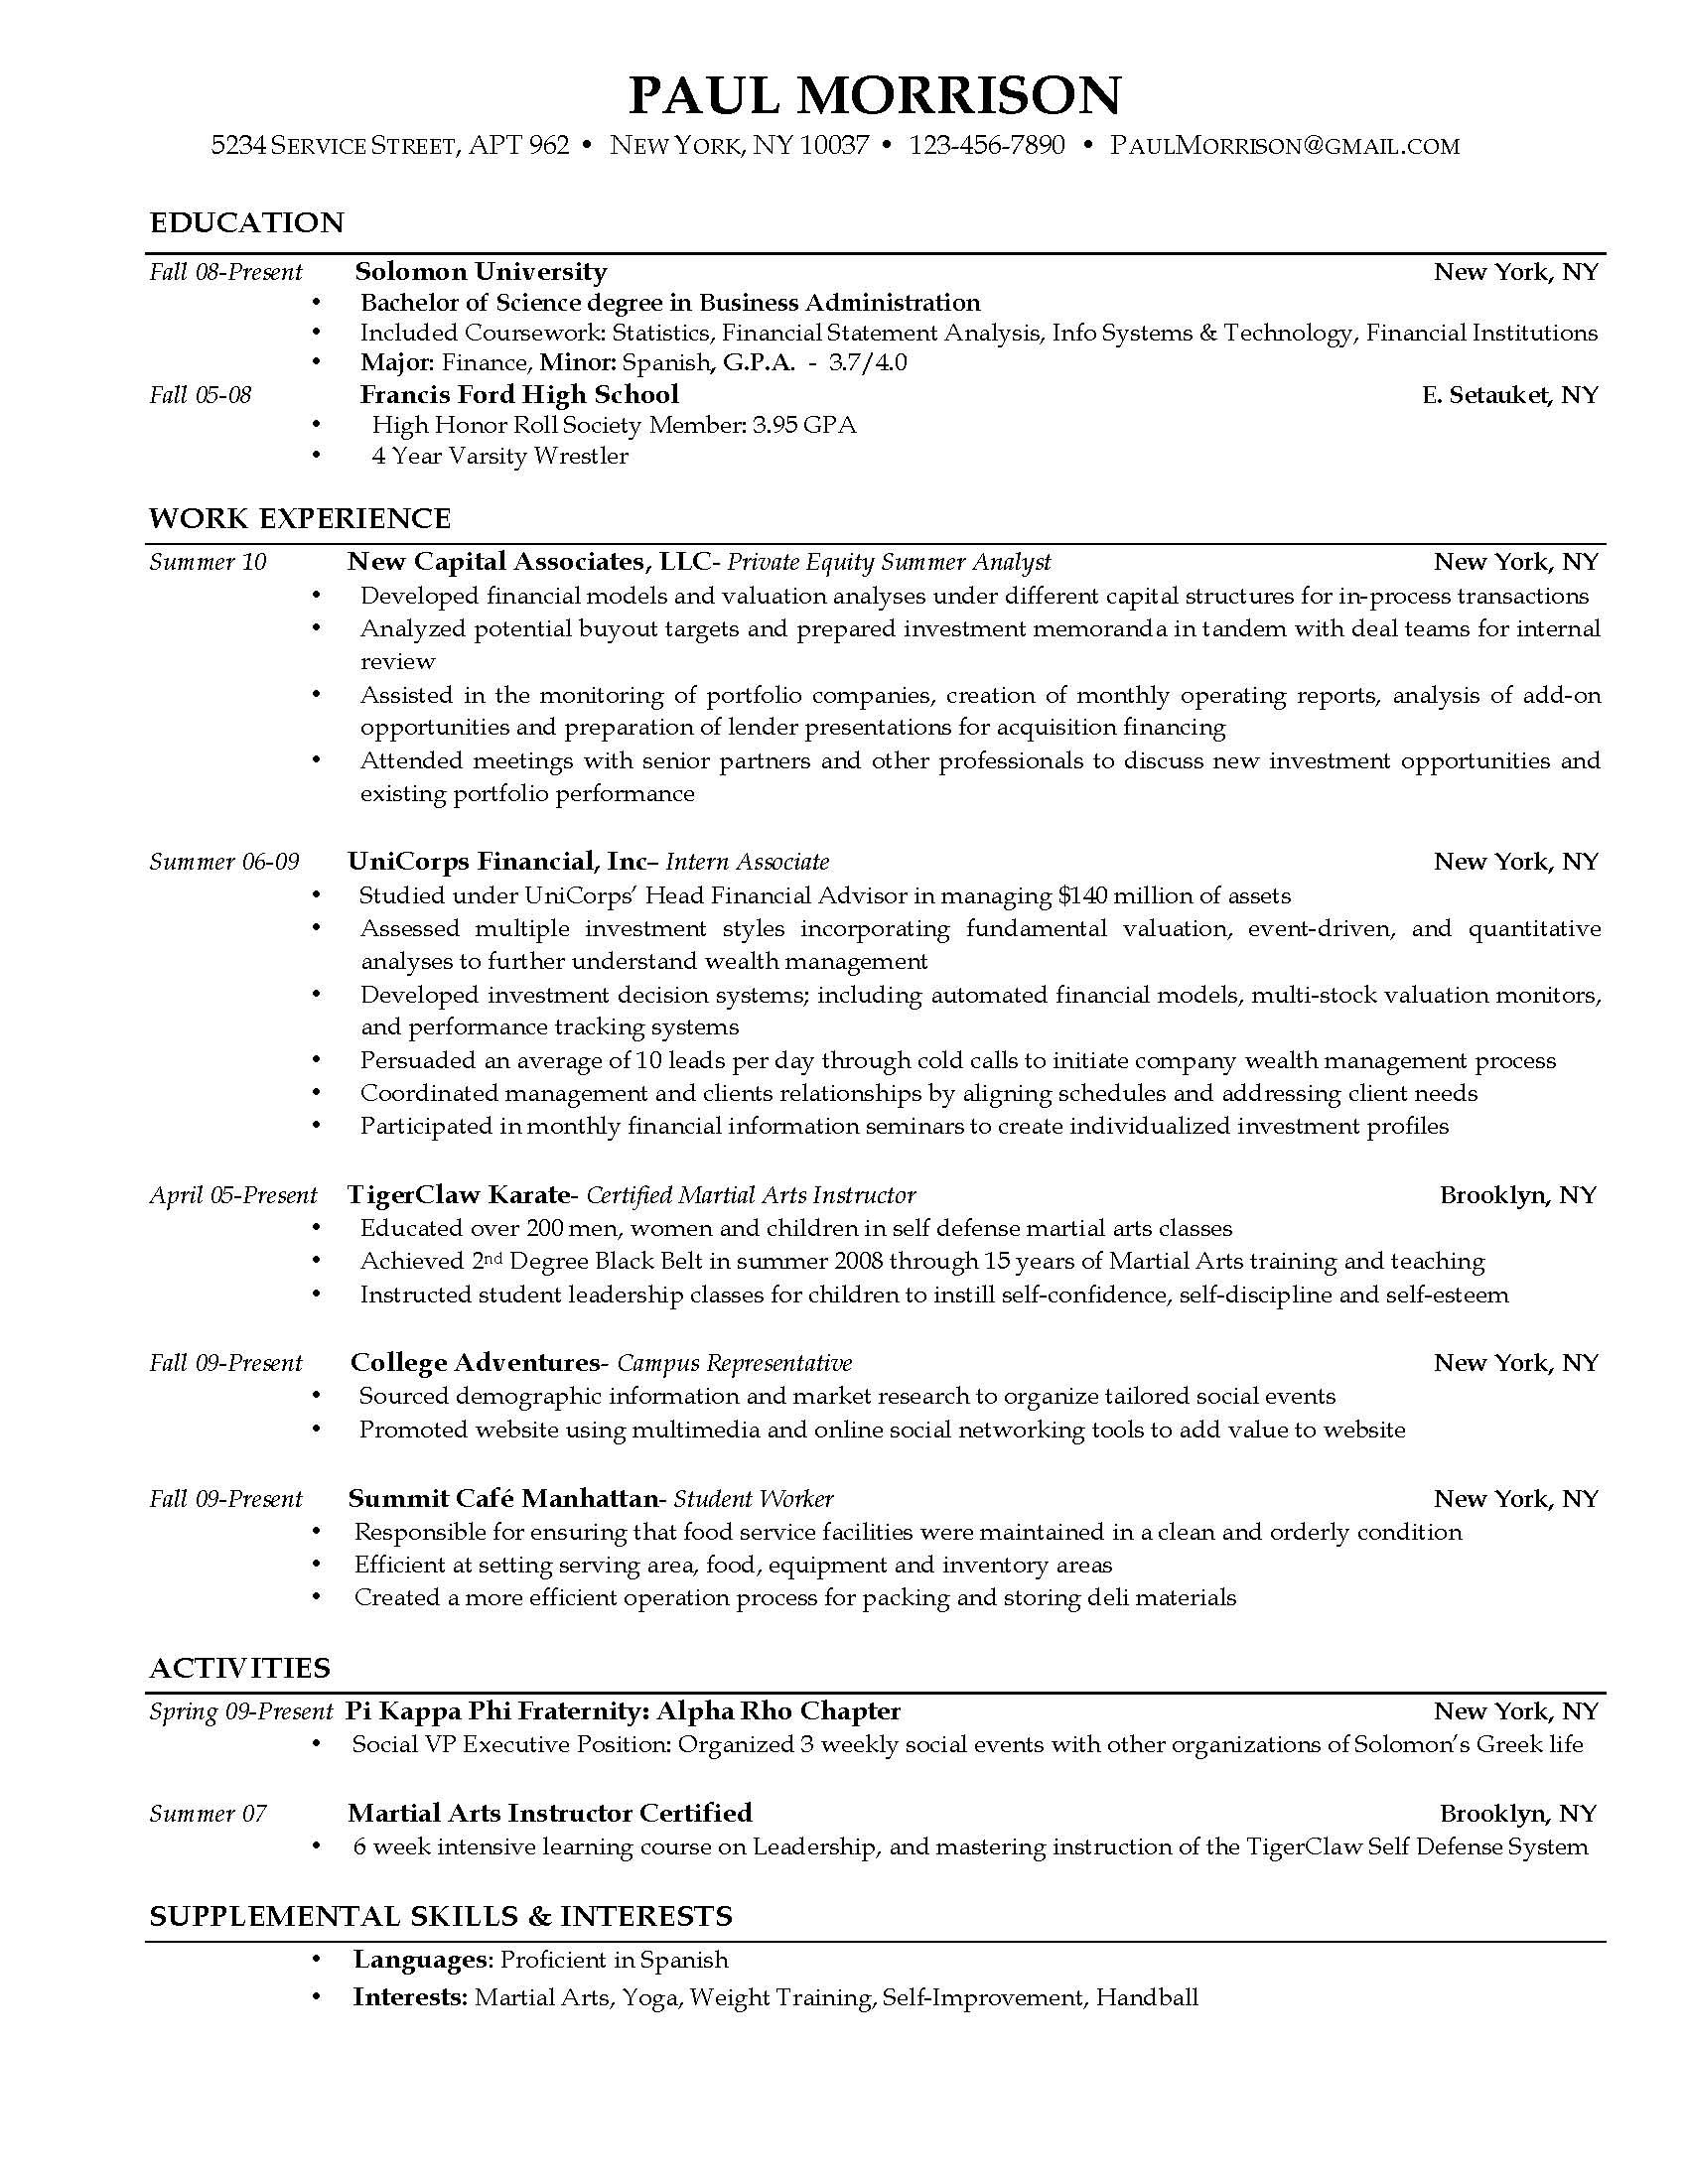 Current Resume Examples  Examples Of Resumes